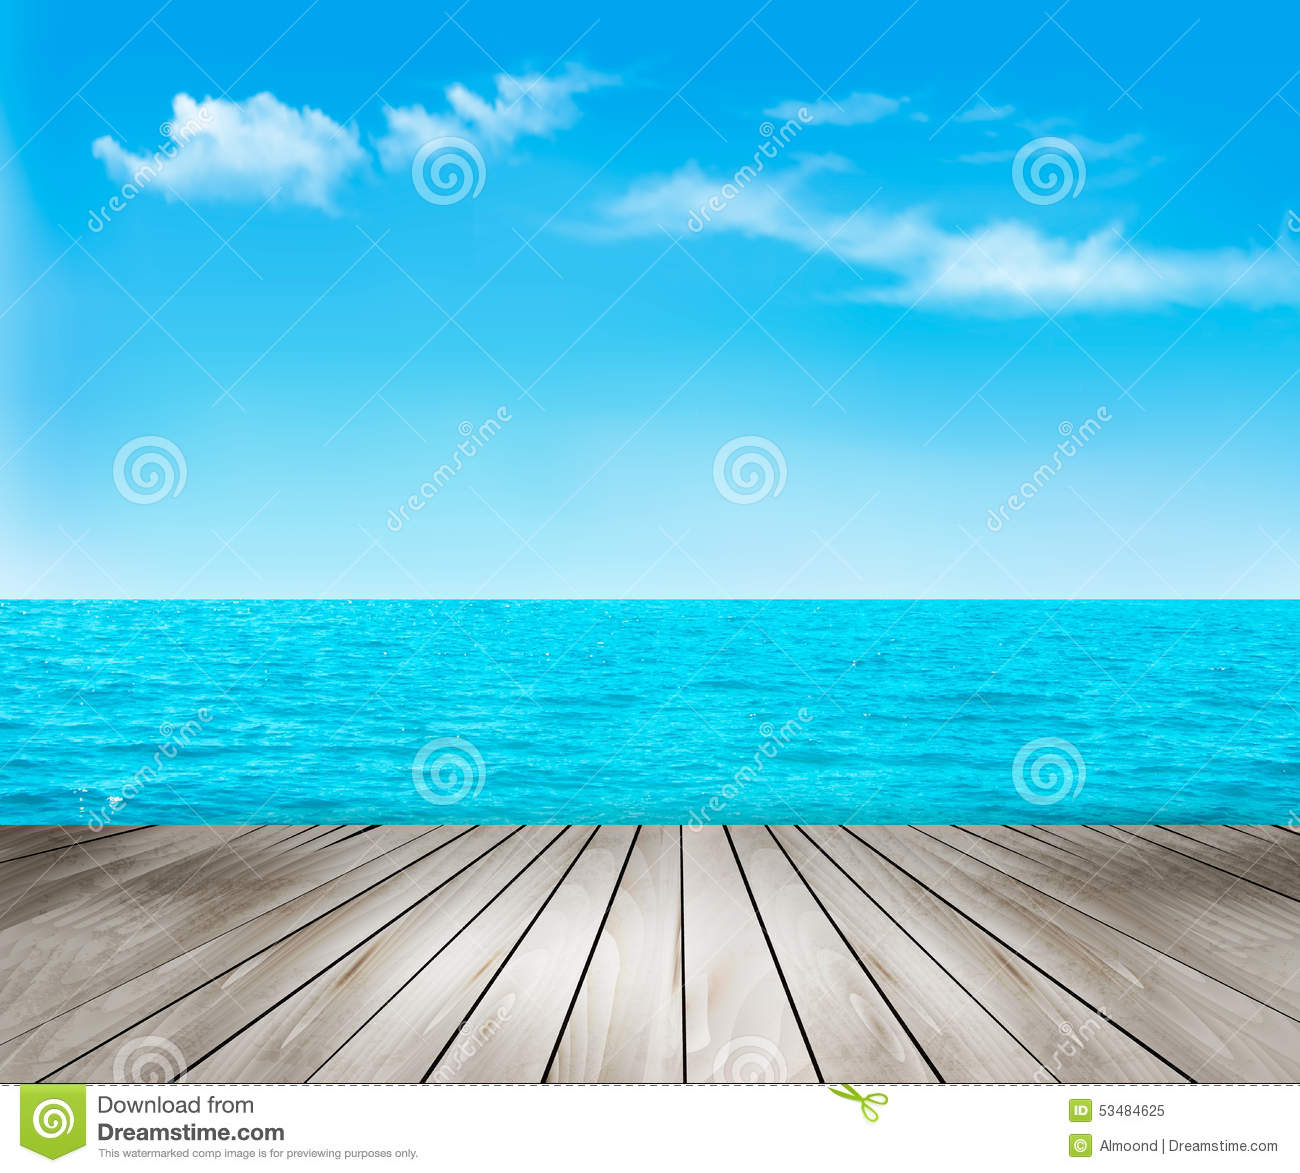 Wood Floor On Beach Sea And Blue Sky For Background Stock: Nature Background With A Wooden Deck, The Sea And The Sky